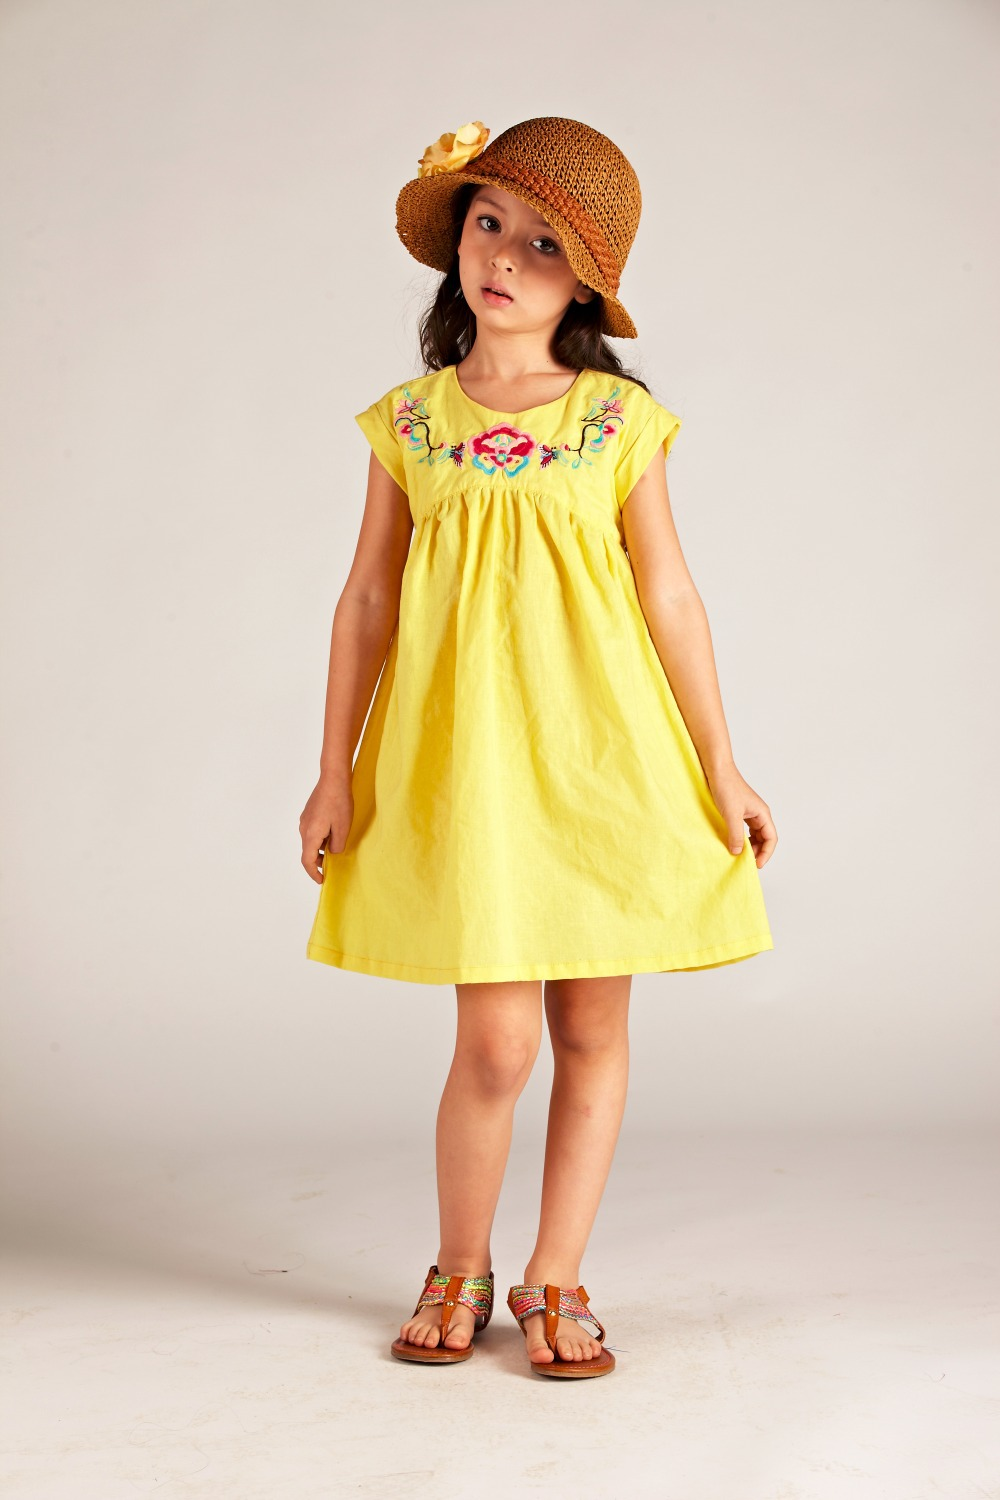 Size 5 Girls Clothing with FREE Shipping & Exchanges, and a % price guarantee. Choose from a huge selection of Size 5 Girls Clothing styles.